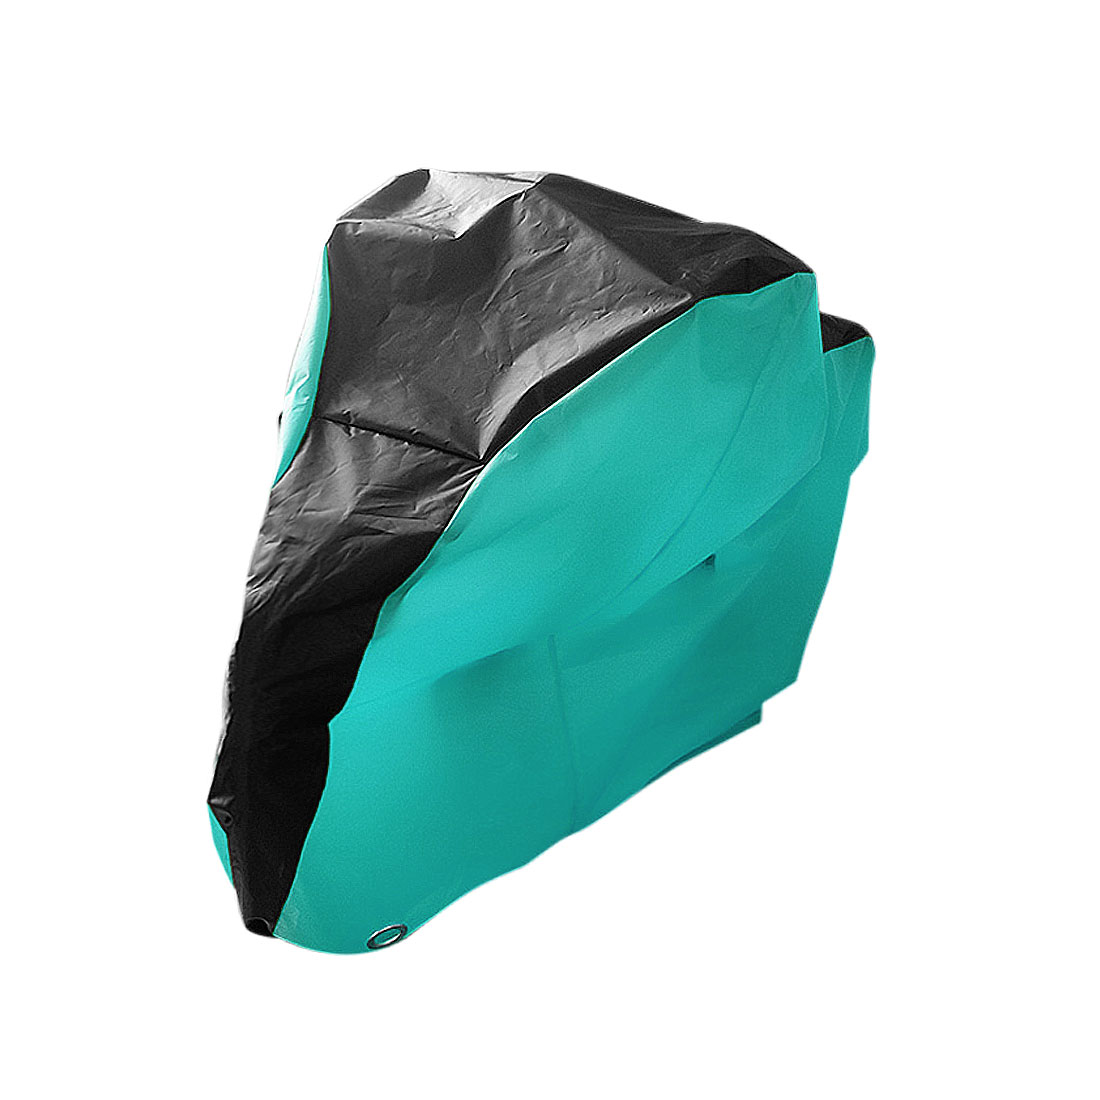 M Lake Green Waterproof Rain UV Dust Resistant Protective Cover for Bike Bicycle